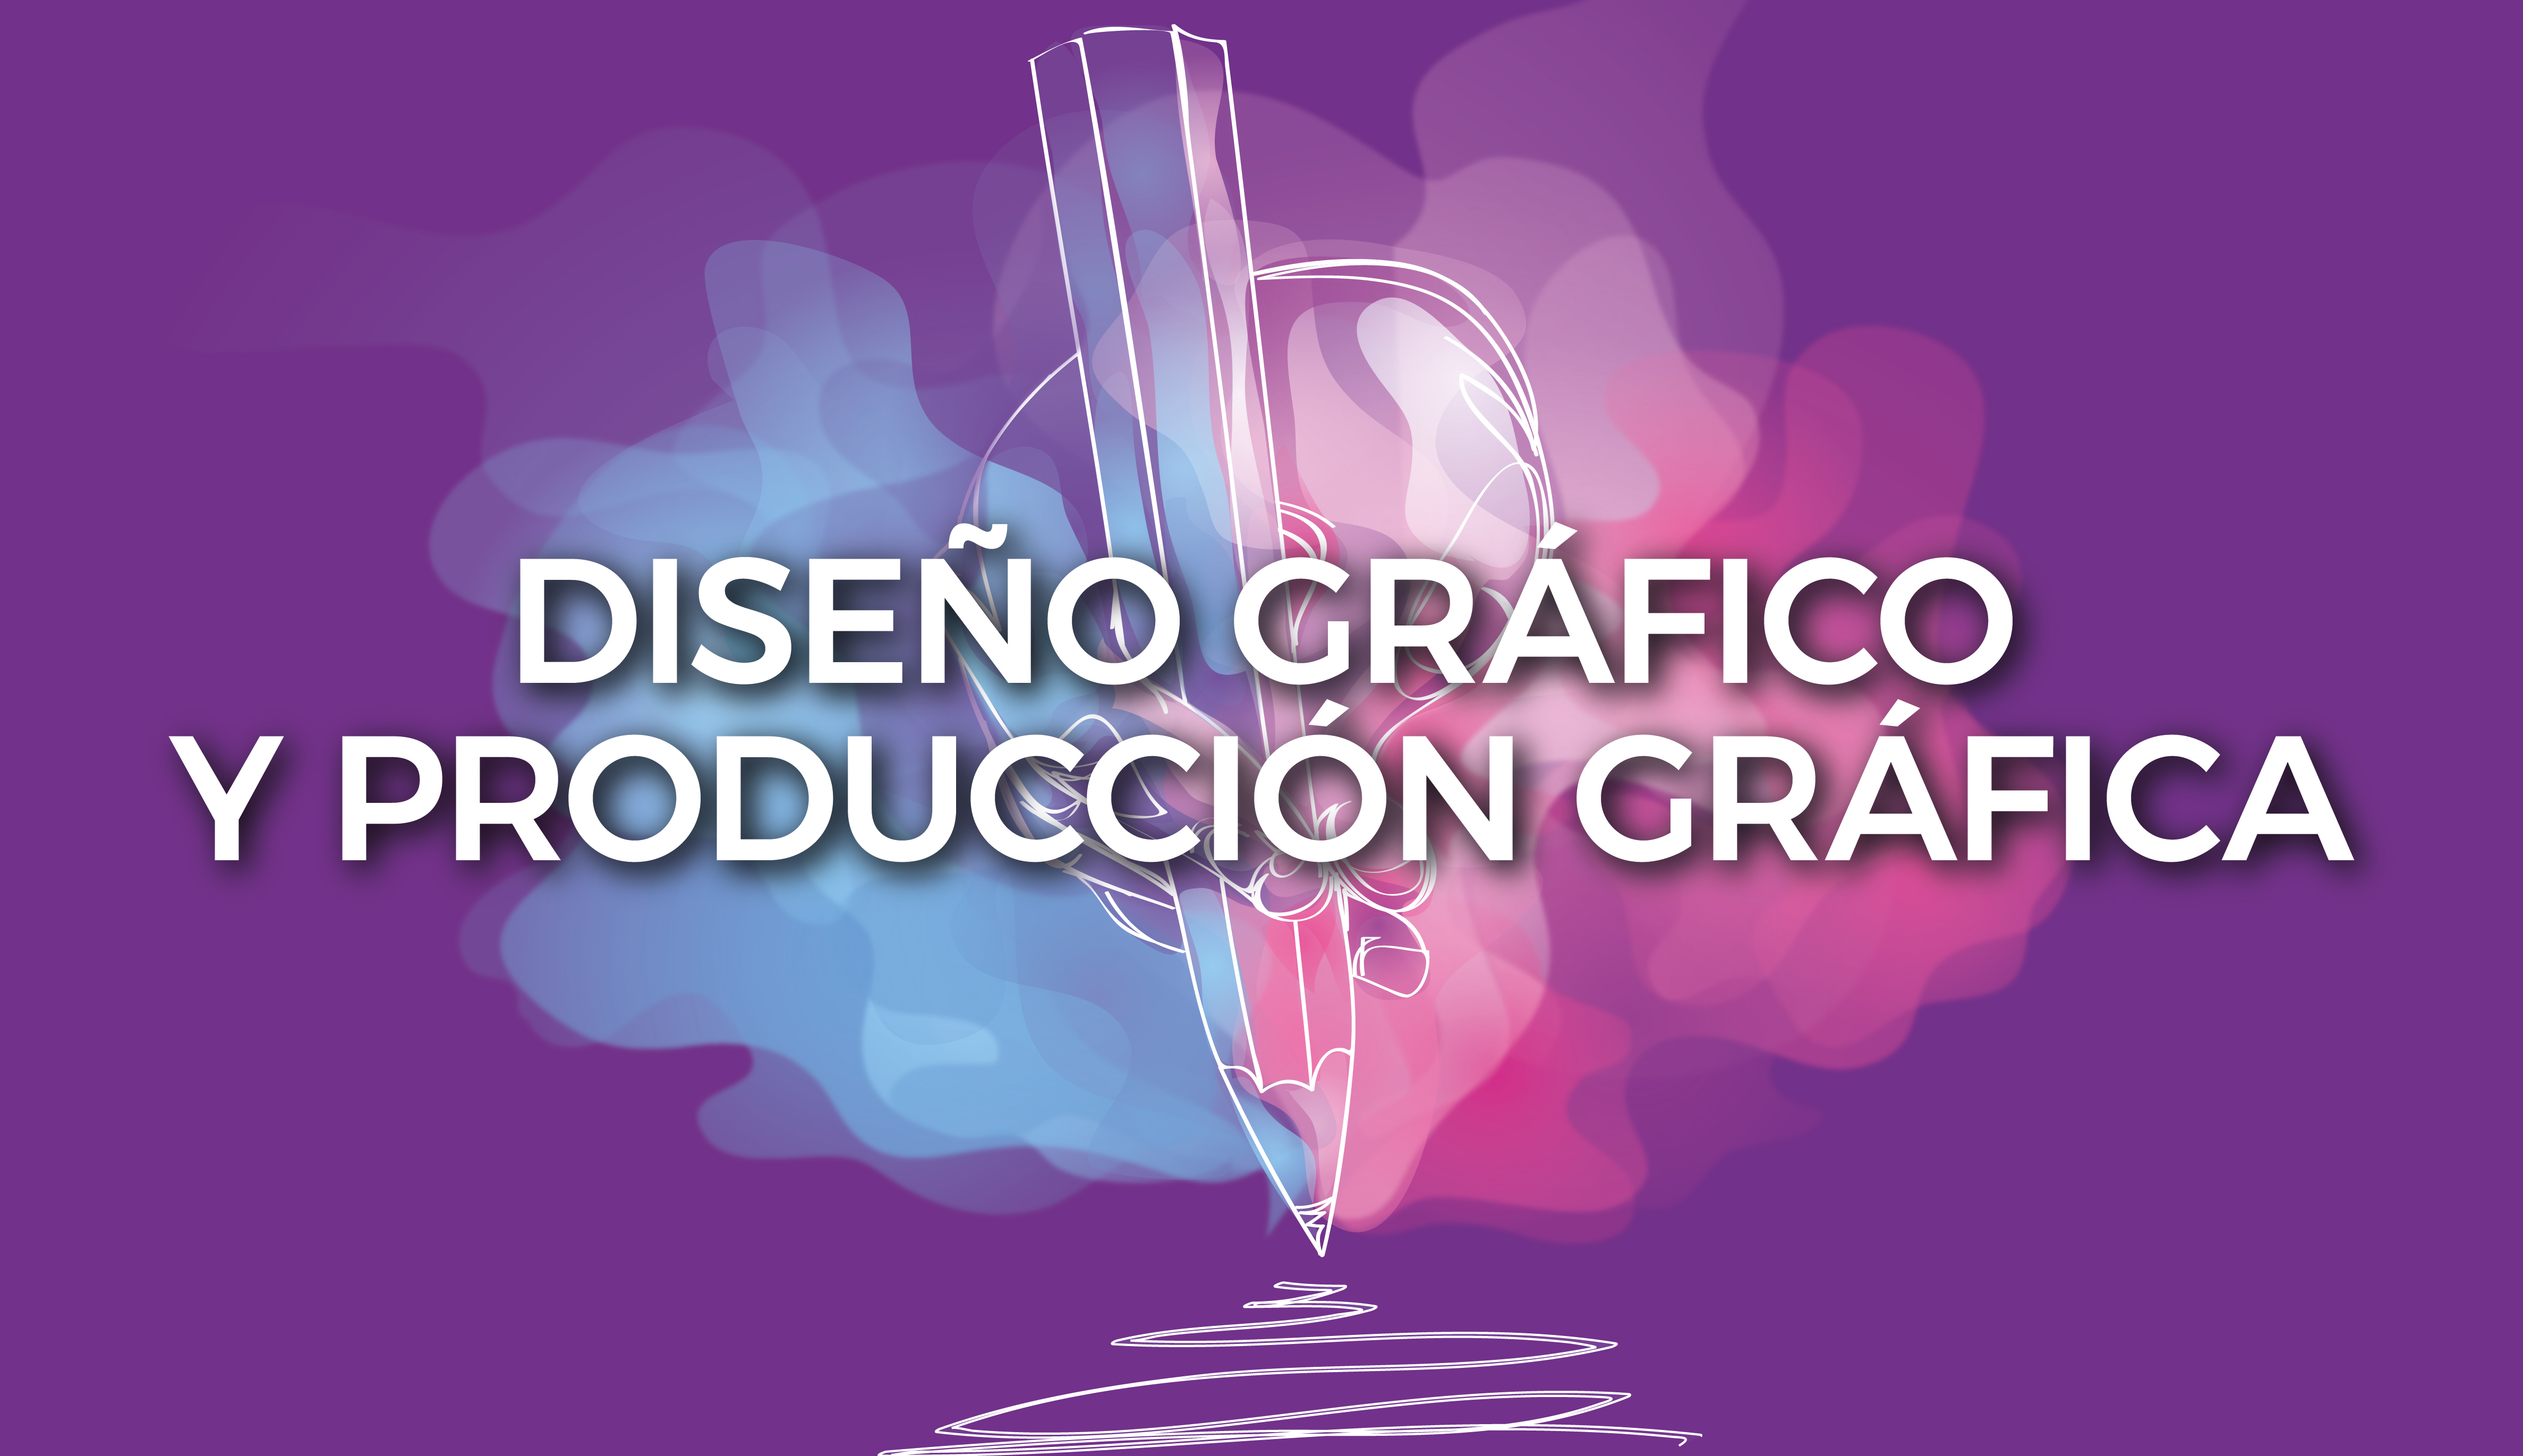 BP-diseño_grafico-produccion_grafica